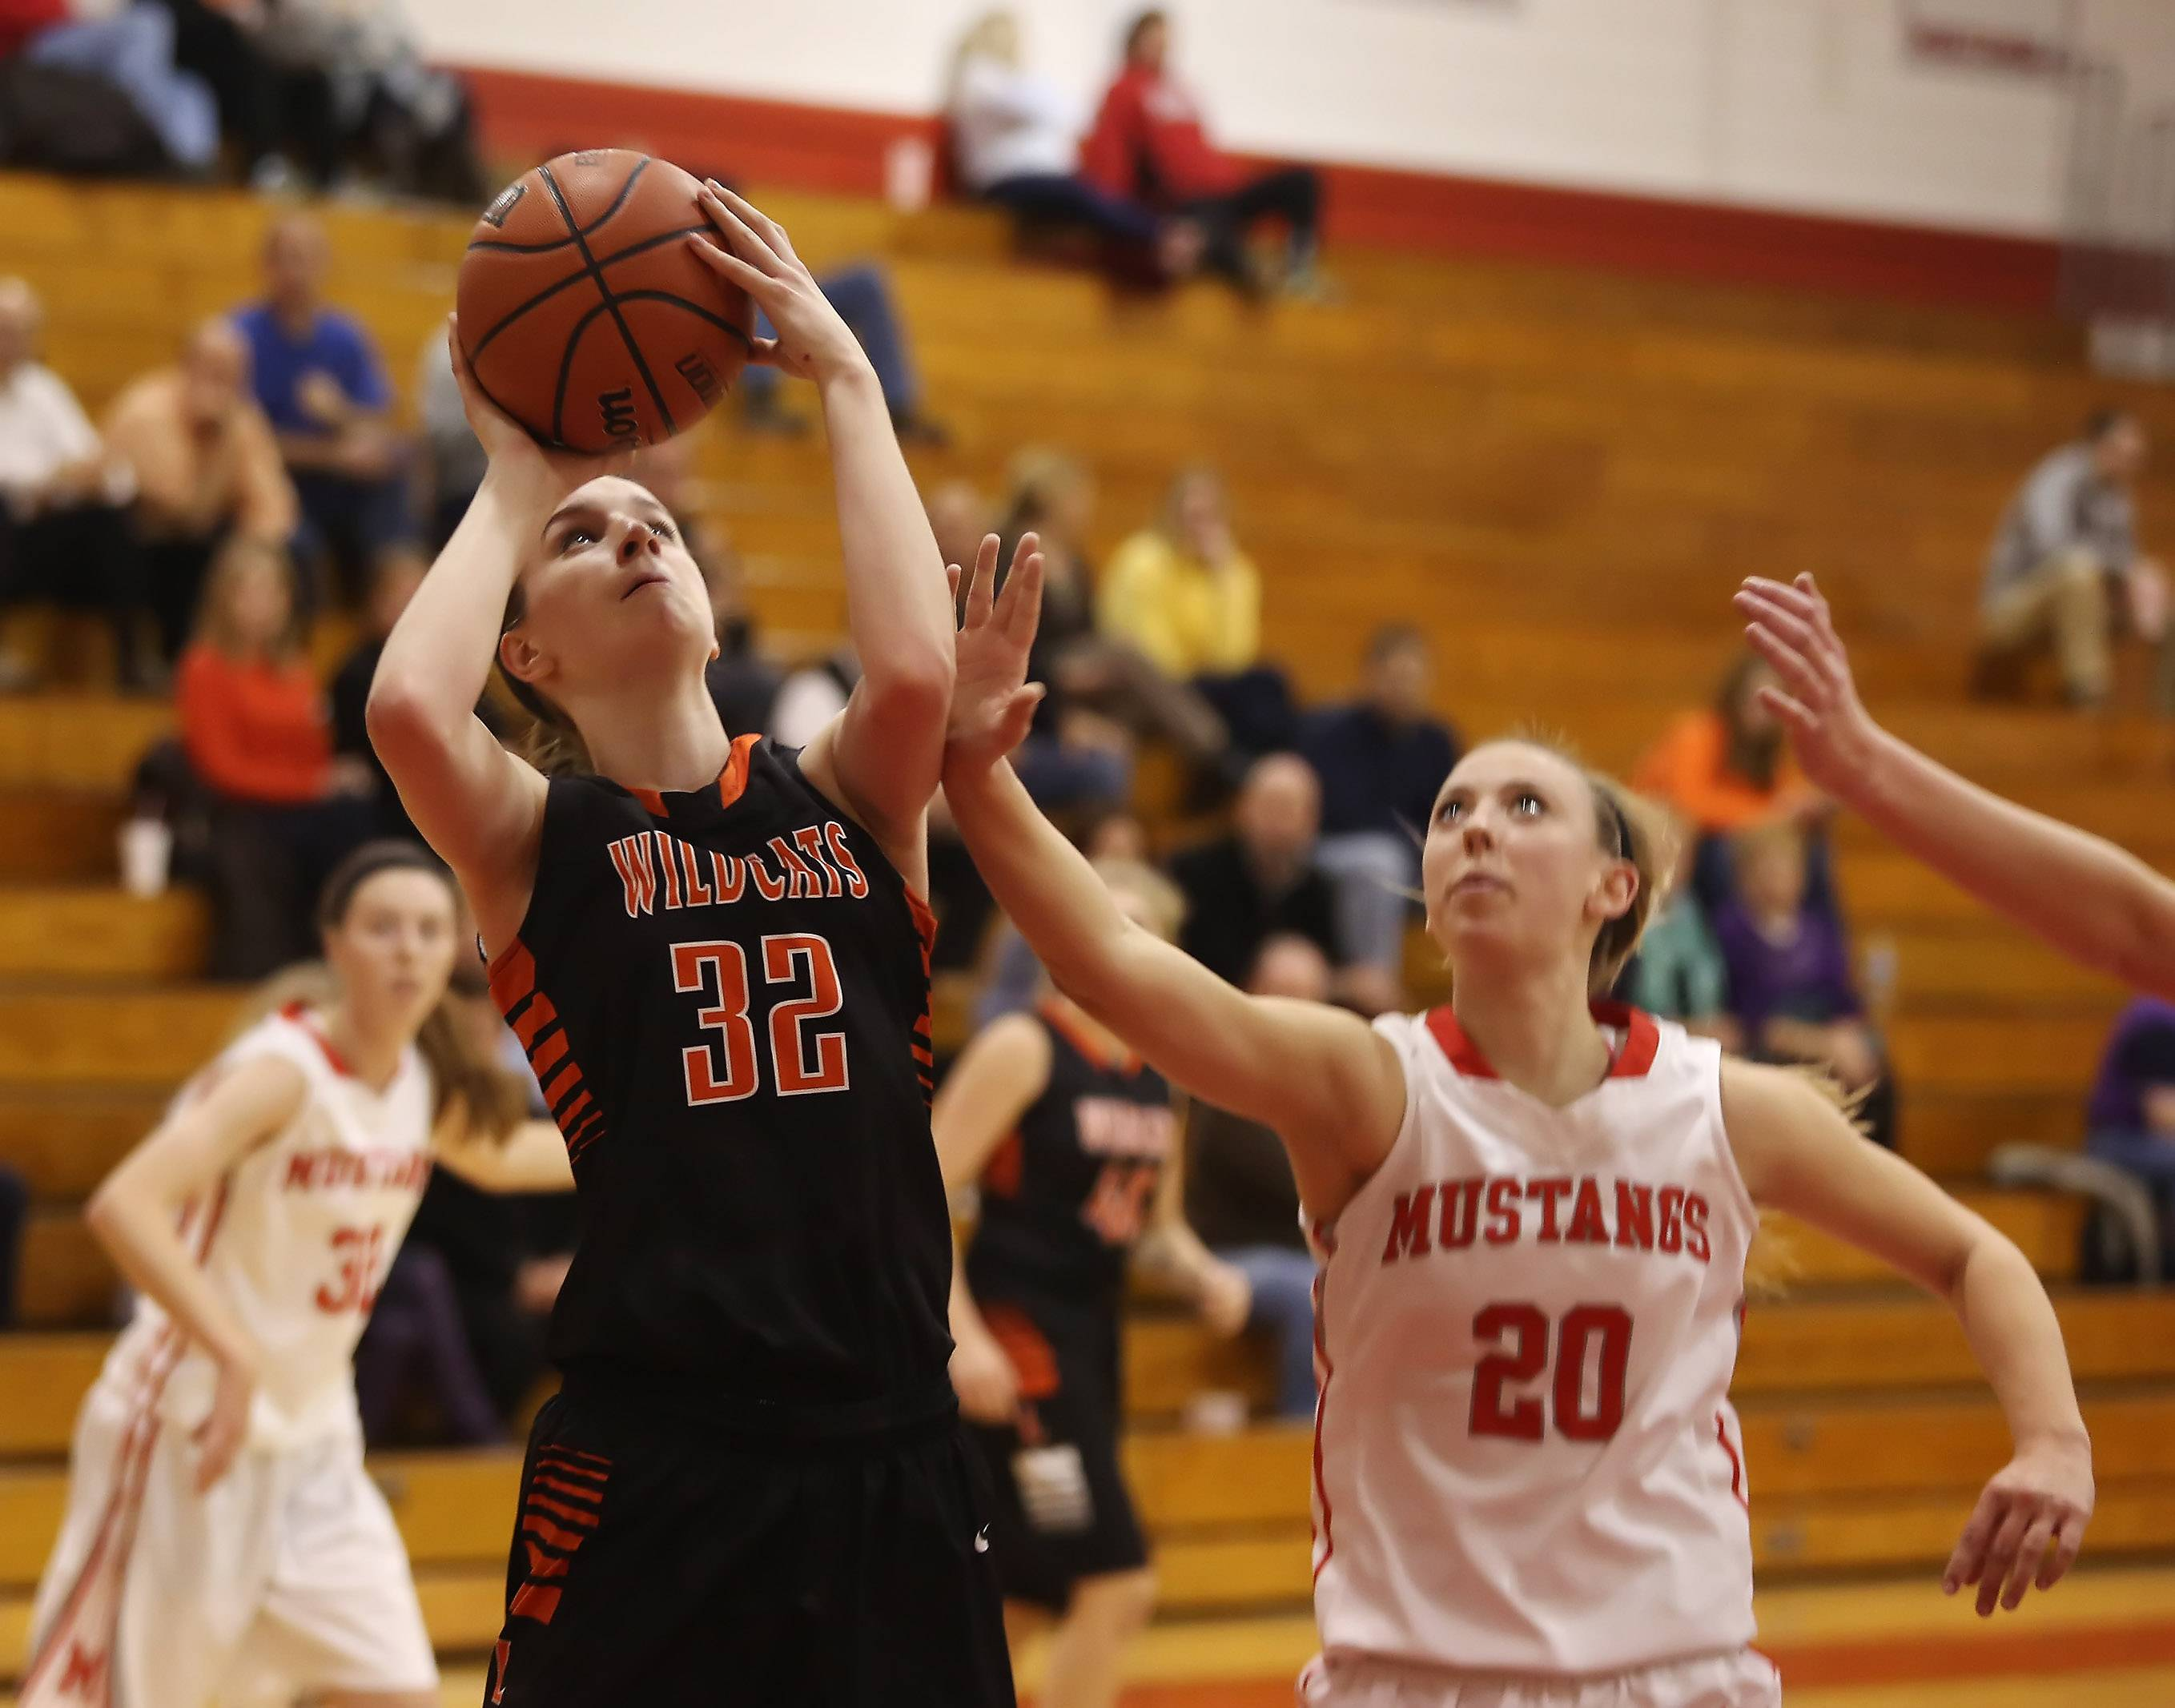 Libertyville forward Caroline Frea takes a shot over Mundelein forward Natalie Busscher.